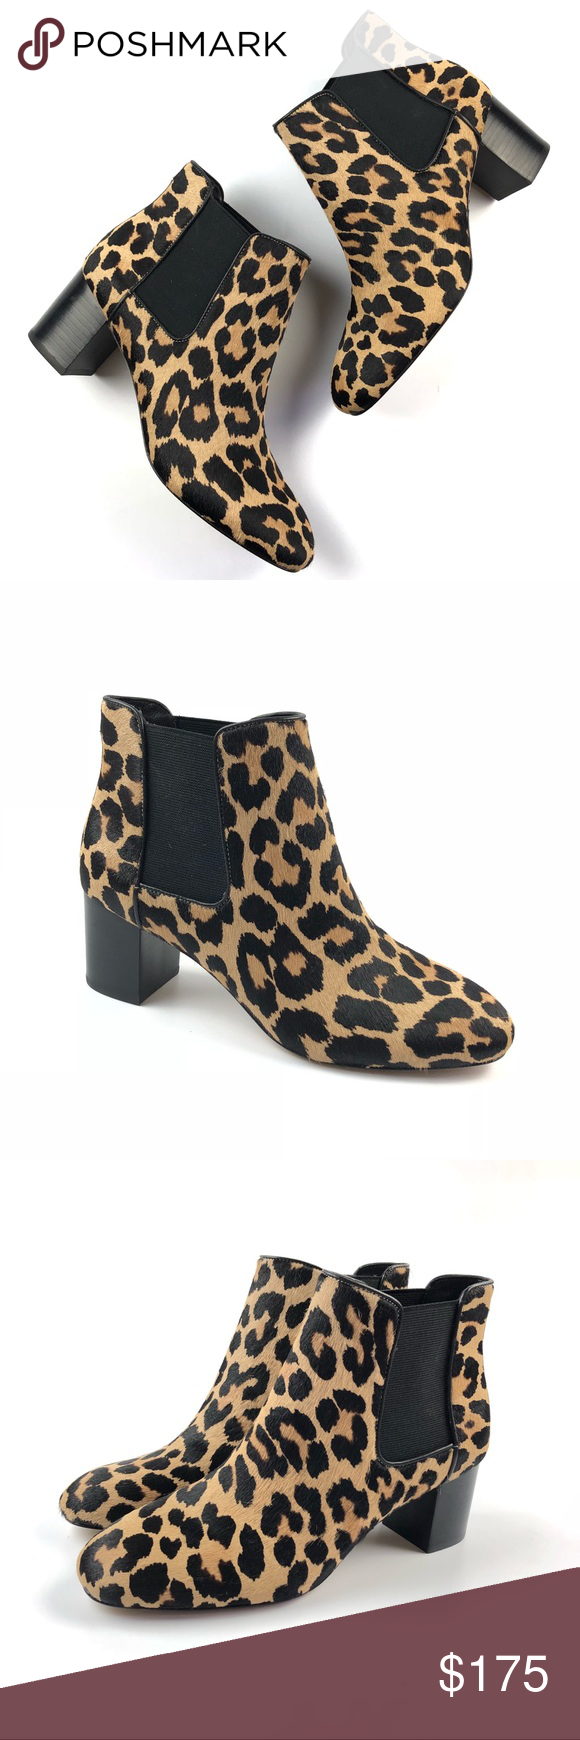 908fa691da2c Kate Spade Leah Cow Skin Leopard Booties NEW Sz 10 New without box ...